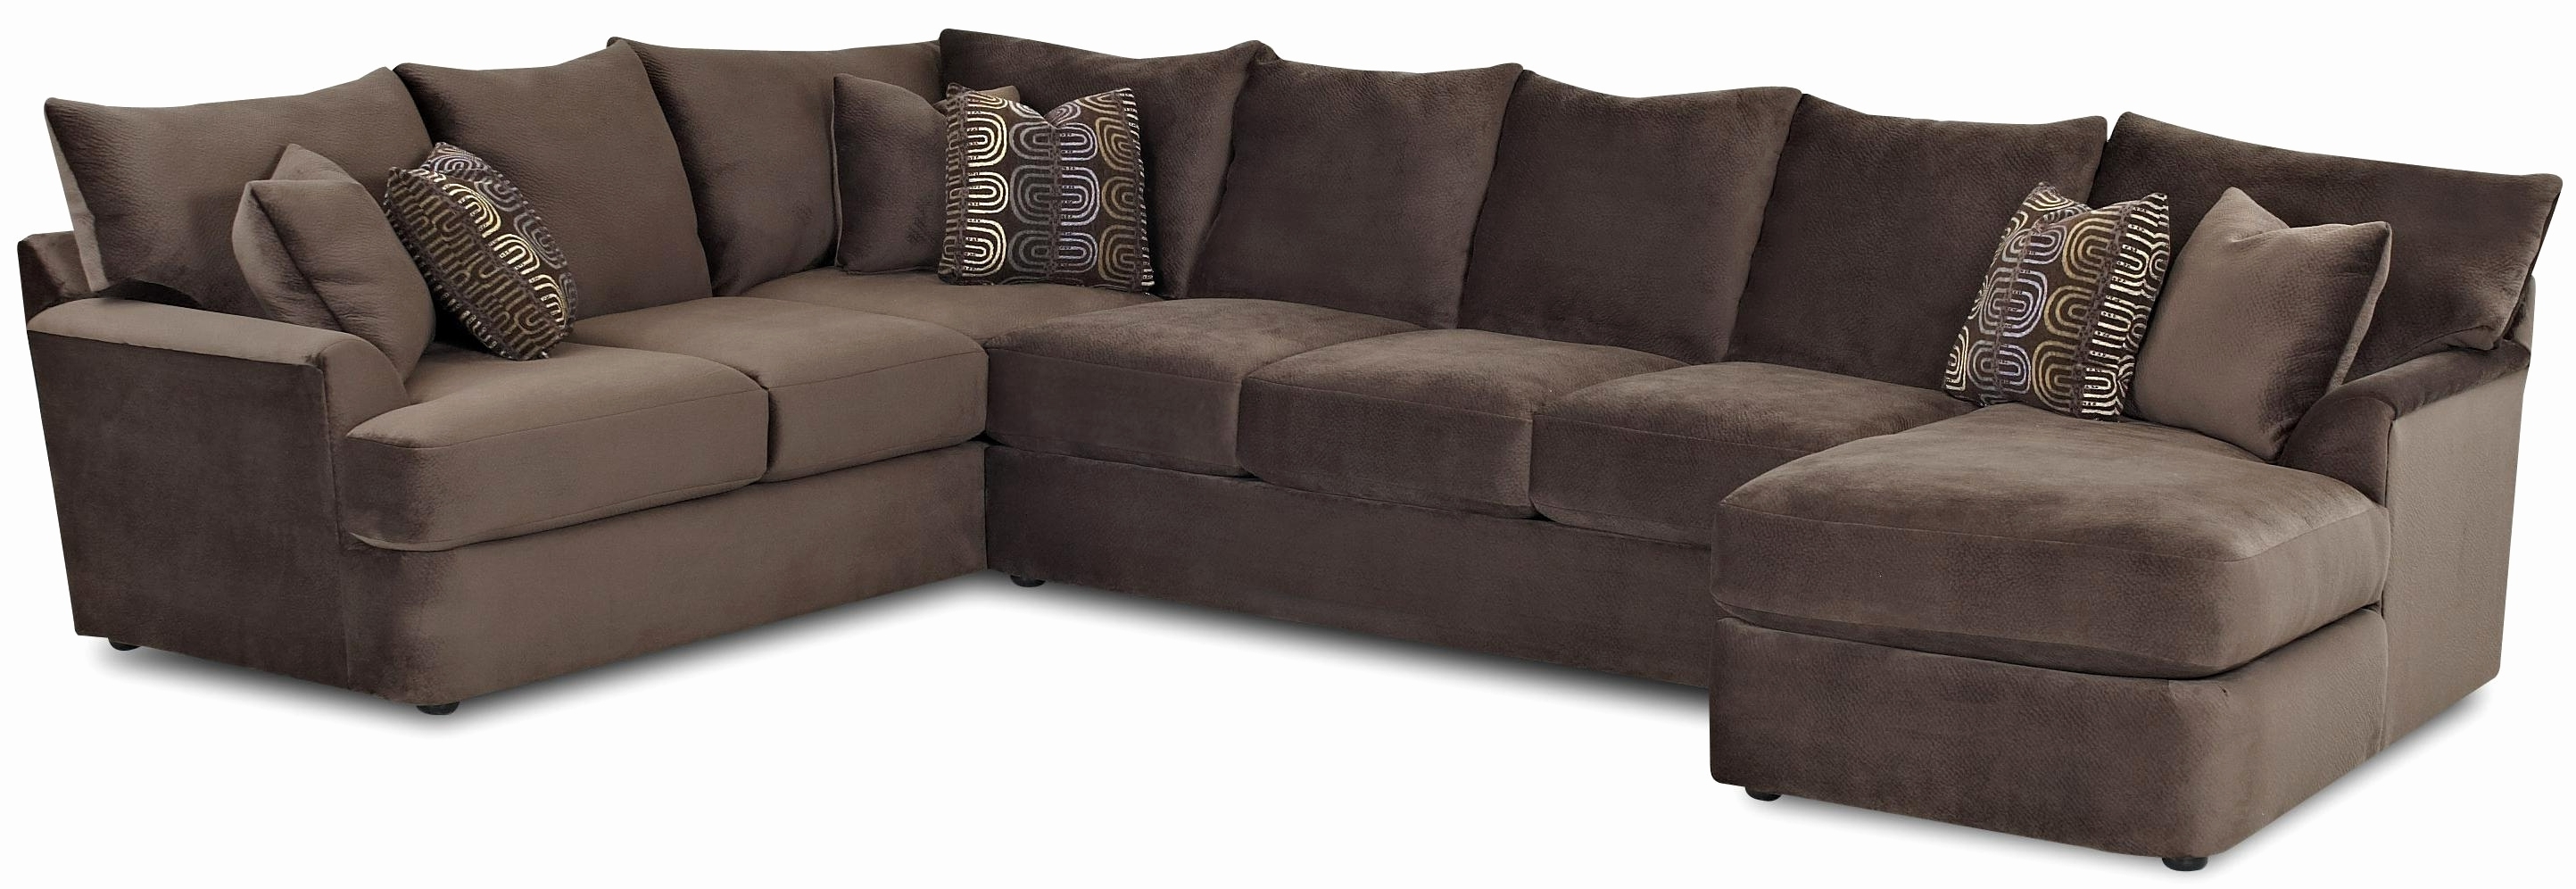 Fashionable New Grey L Shaped Couch 2018 – Couches And Sofas Ideas With Regard To Leather L Shaped Sectional Sofas (View 7 of 20)